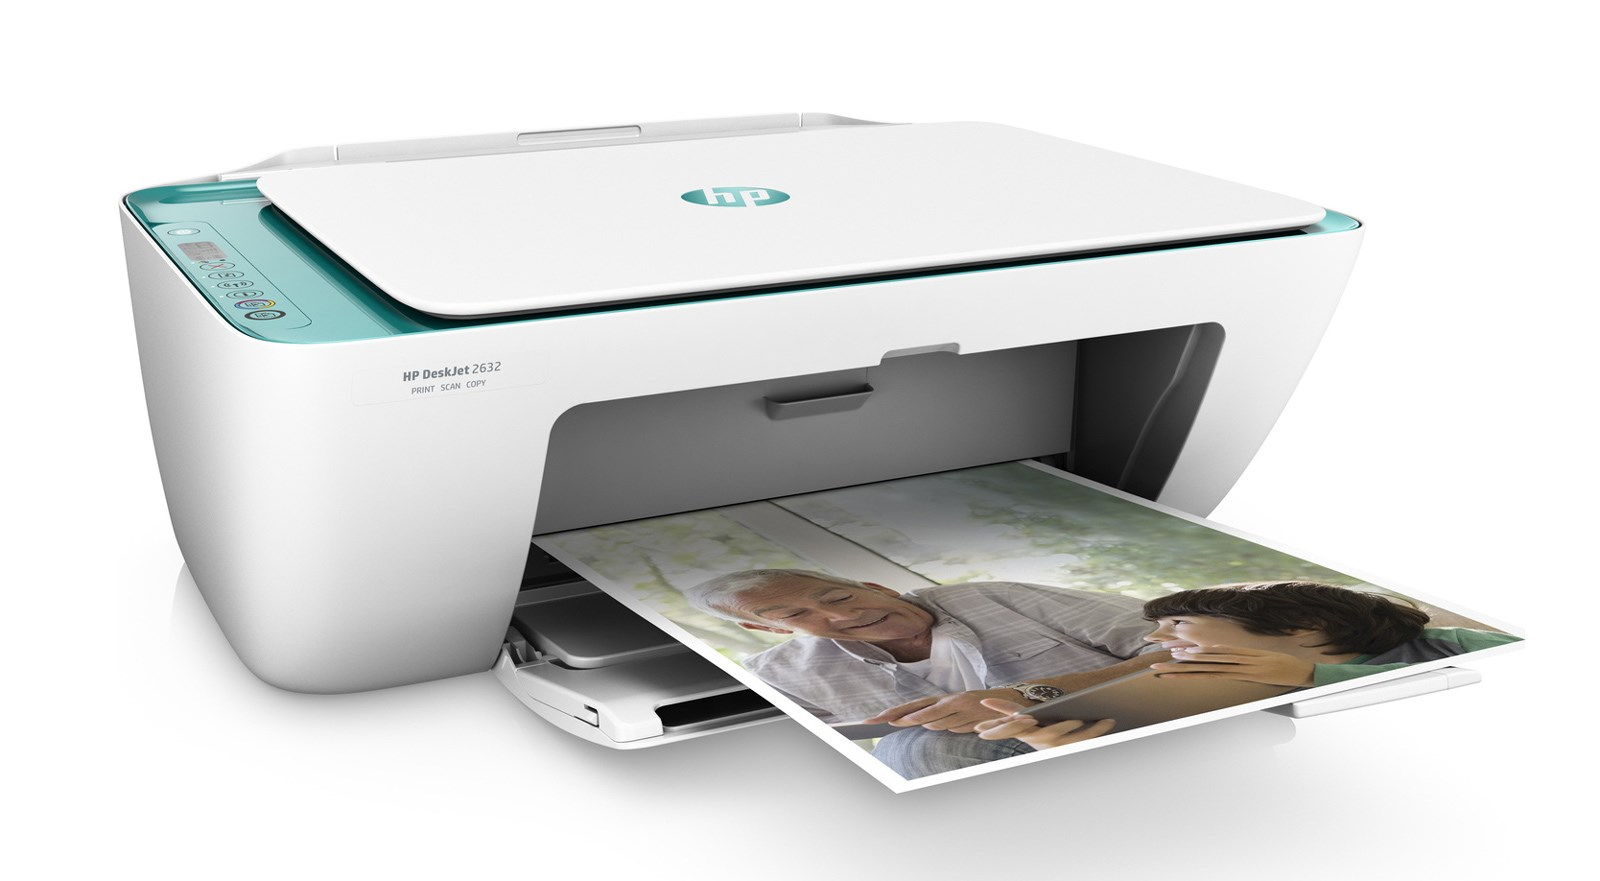 HP MFP Printer DeskJet 2632 All-in-One, WiFi, Color, Καινούριος - HP 21792